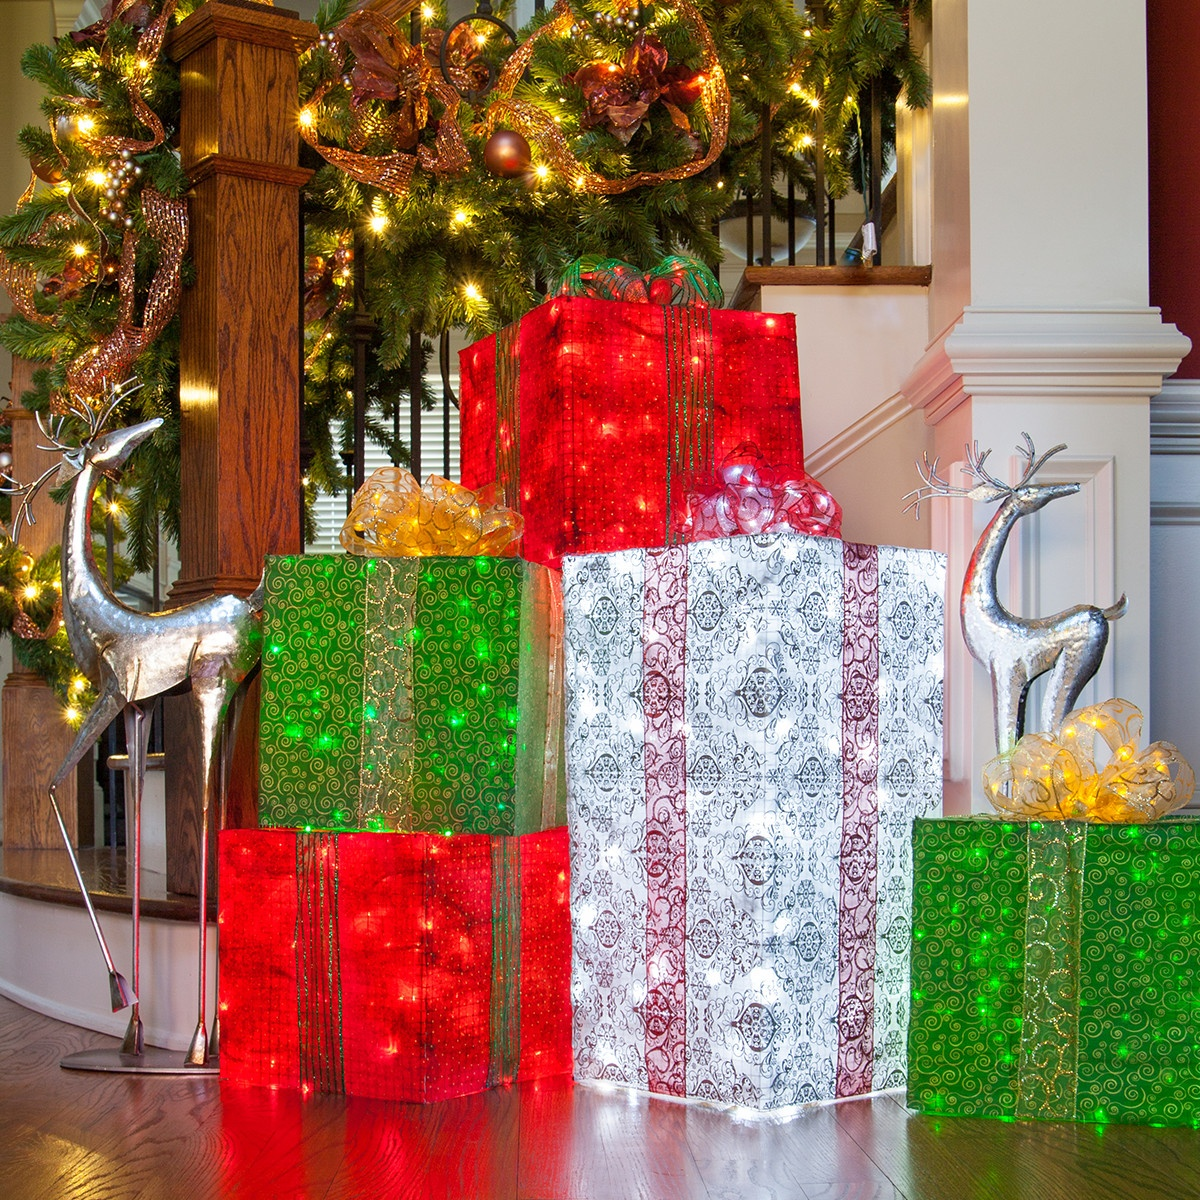 Lighted christmas gift boxes yard decor - Use Chicken Wire Fabric And String Lights To Create Diy Lighted Christmas Presents